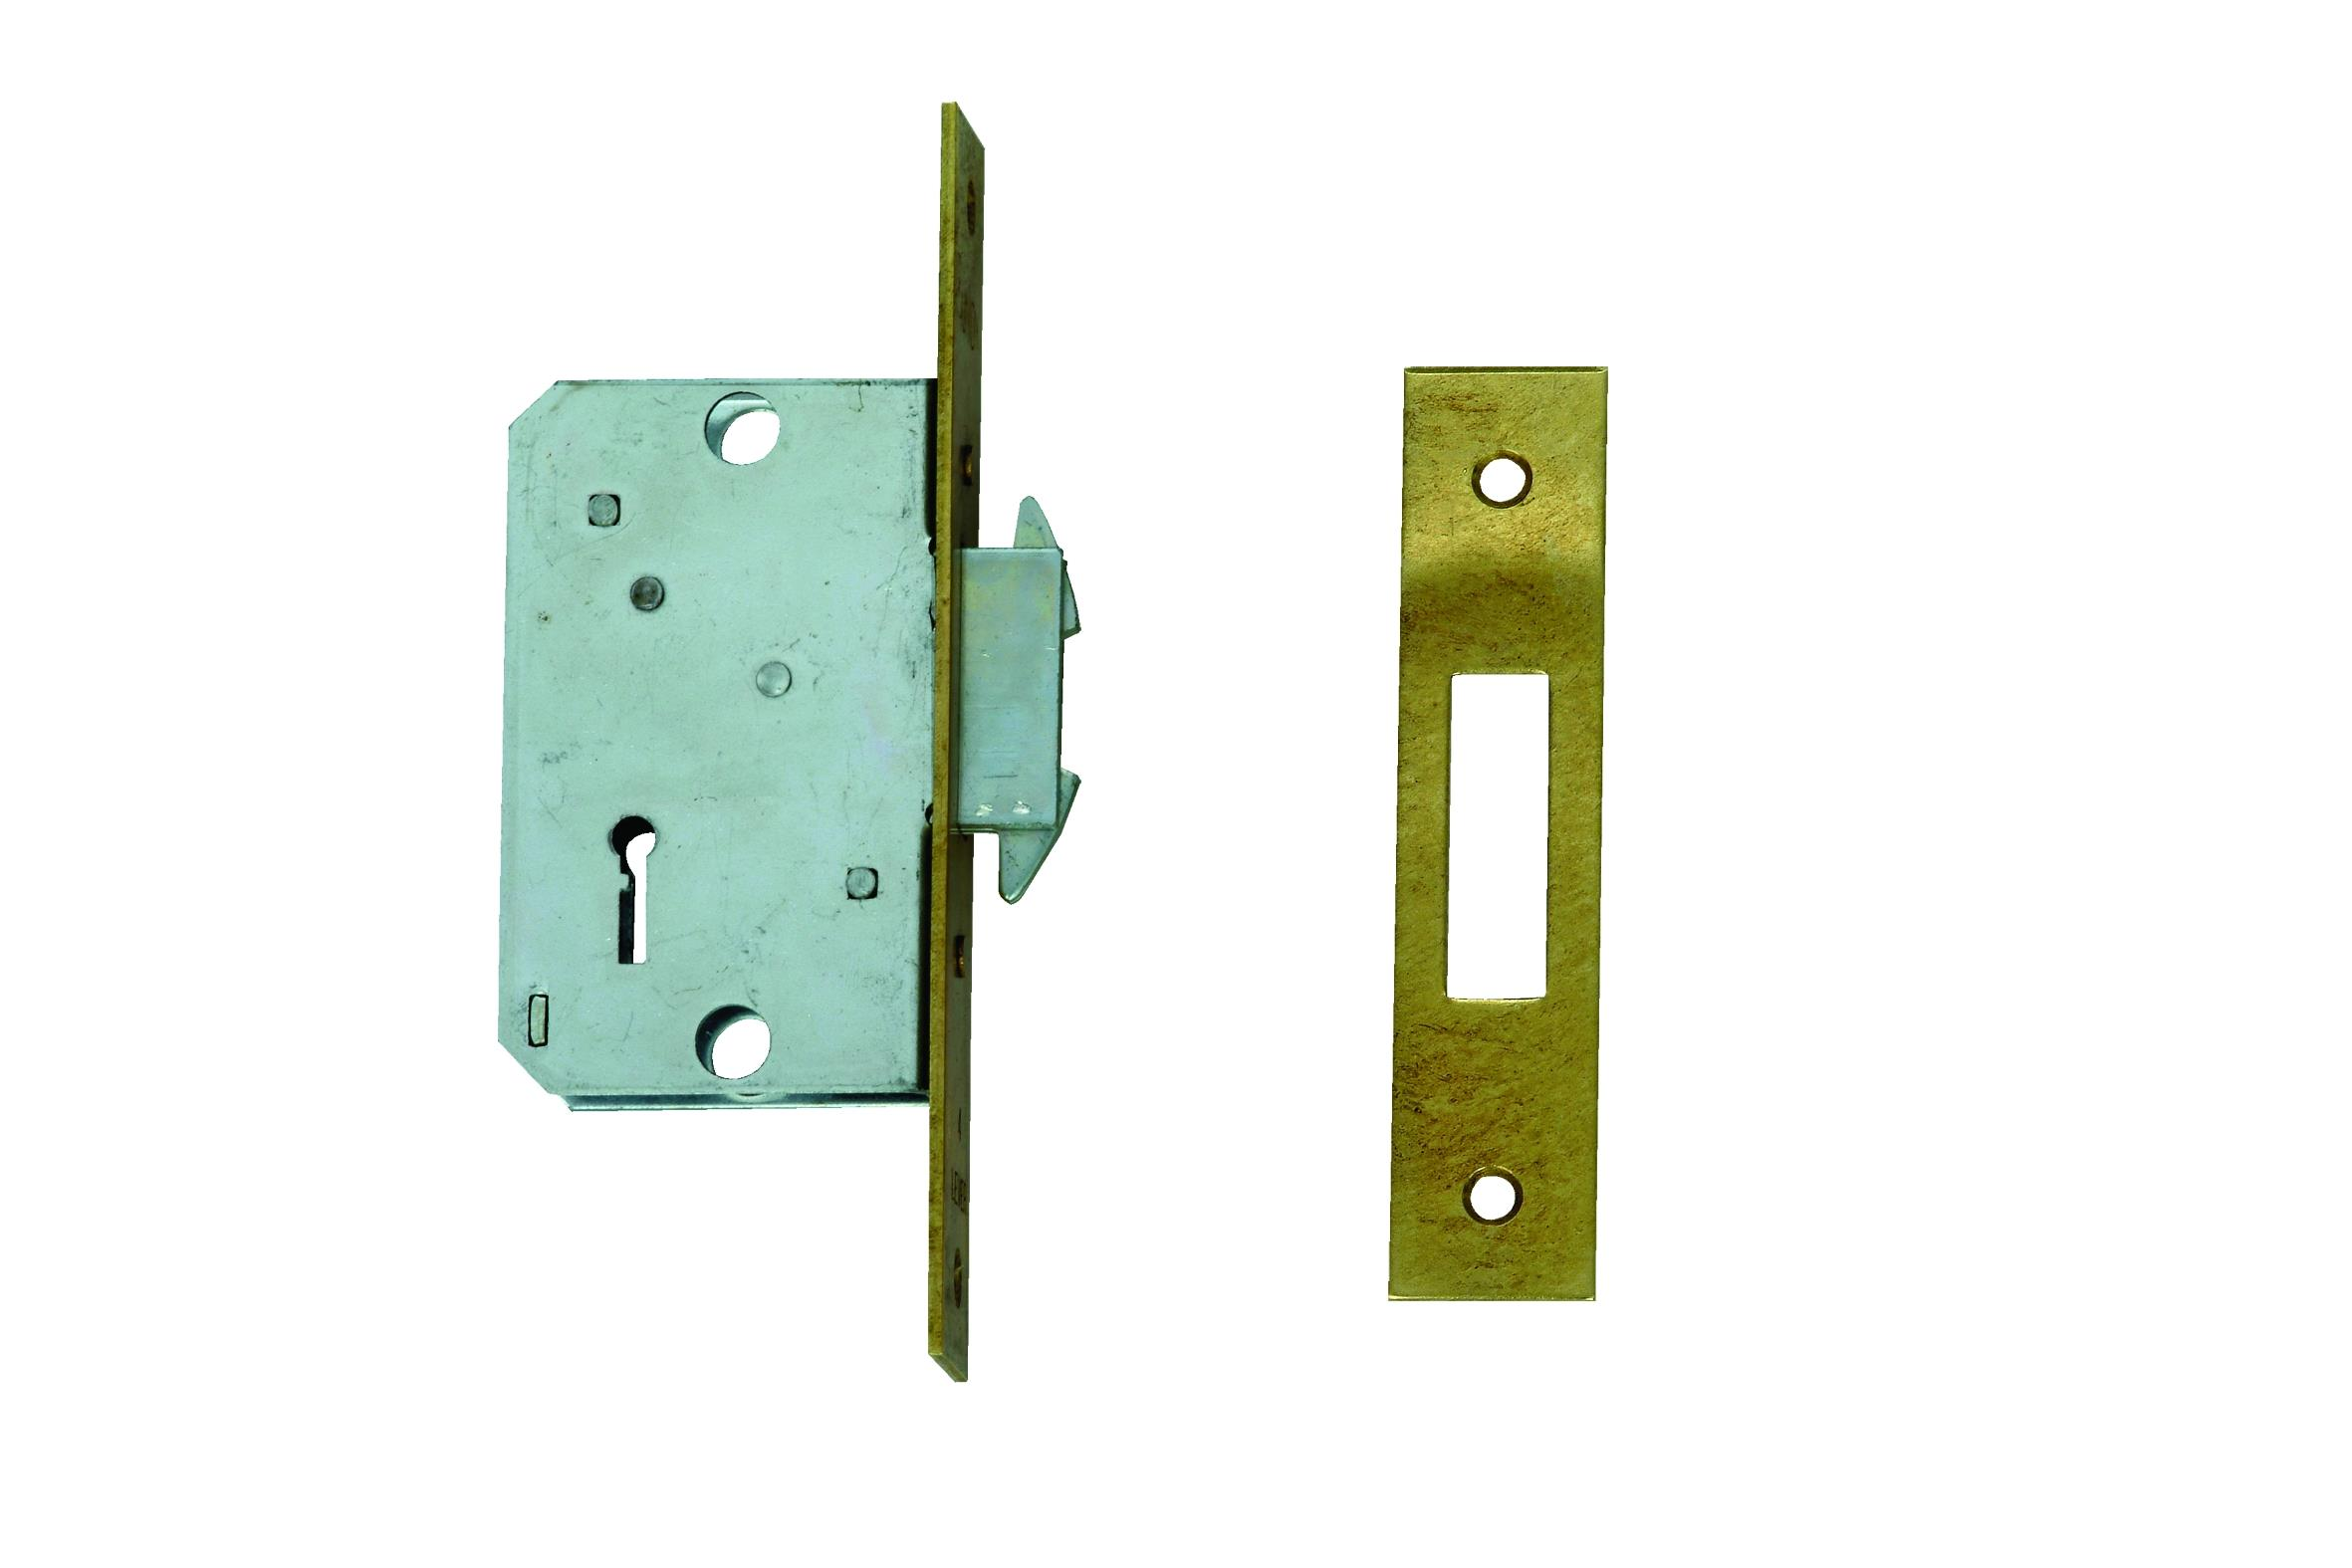 24313-55 - Narrow Stile 4 Lever Wing Bolt Sliding Door Lock